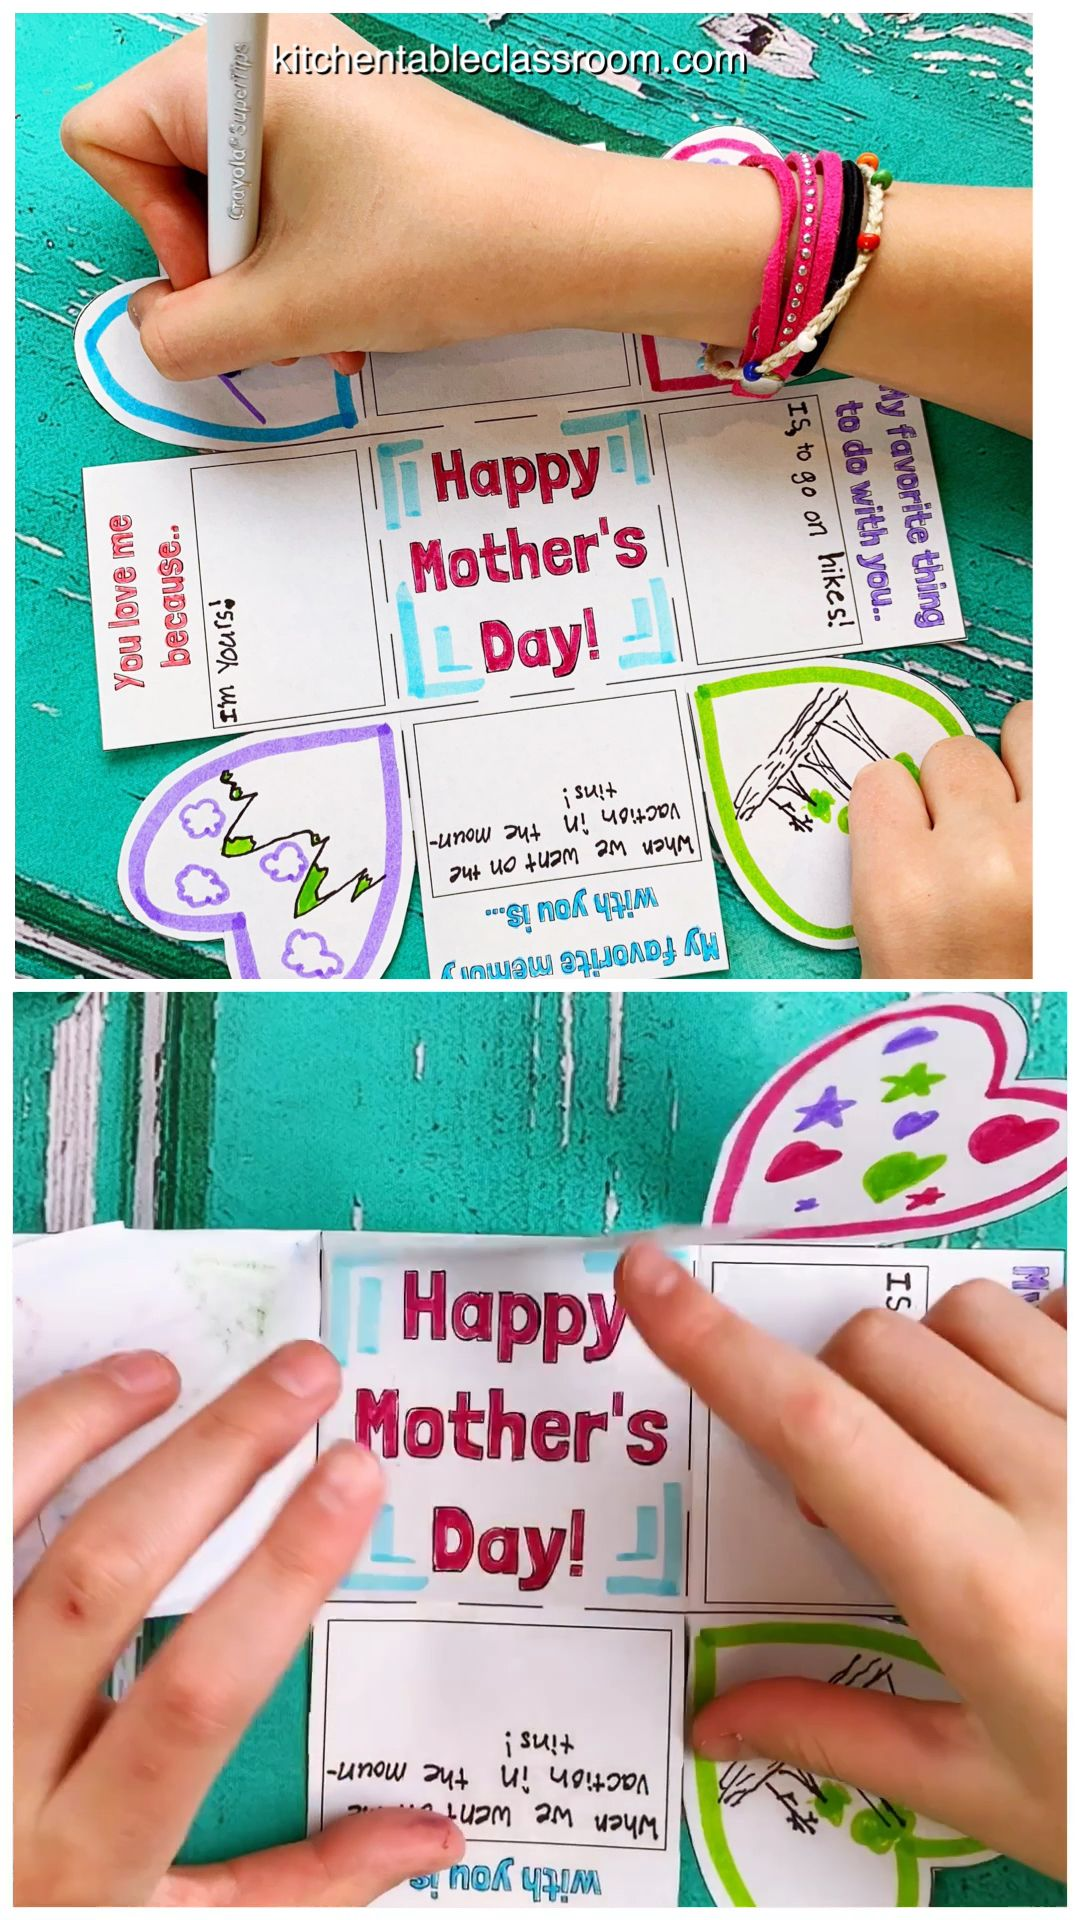 A Free Exploding Printable Mothers Day Card for Kids - The Kitchen Table Classroom